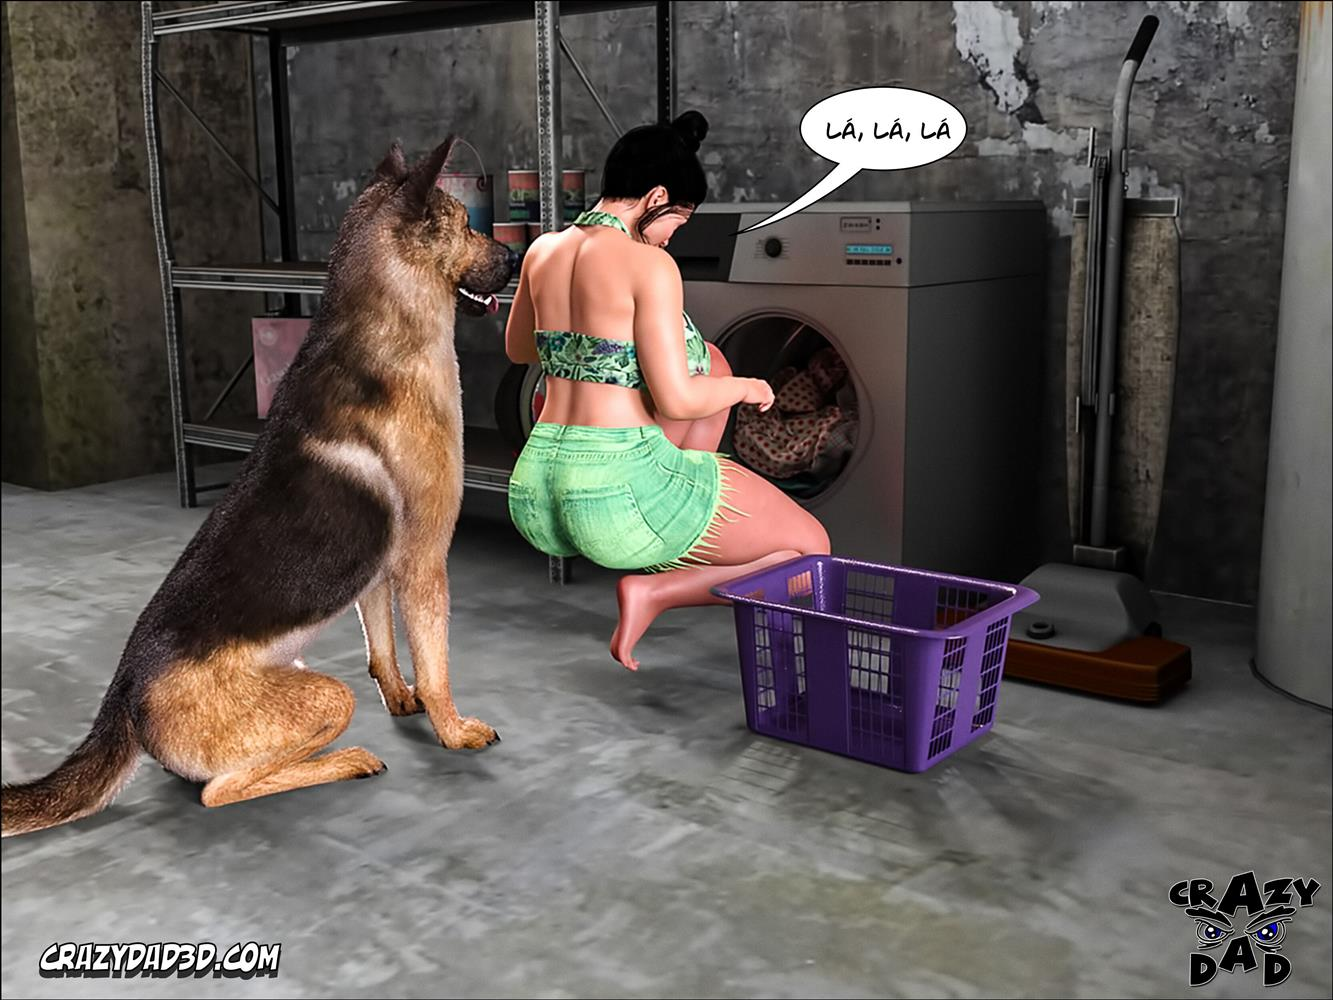 Mom's Help 21 [Crazy Dad 3D] - Foto 54